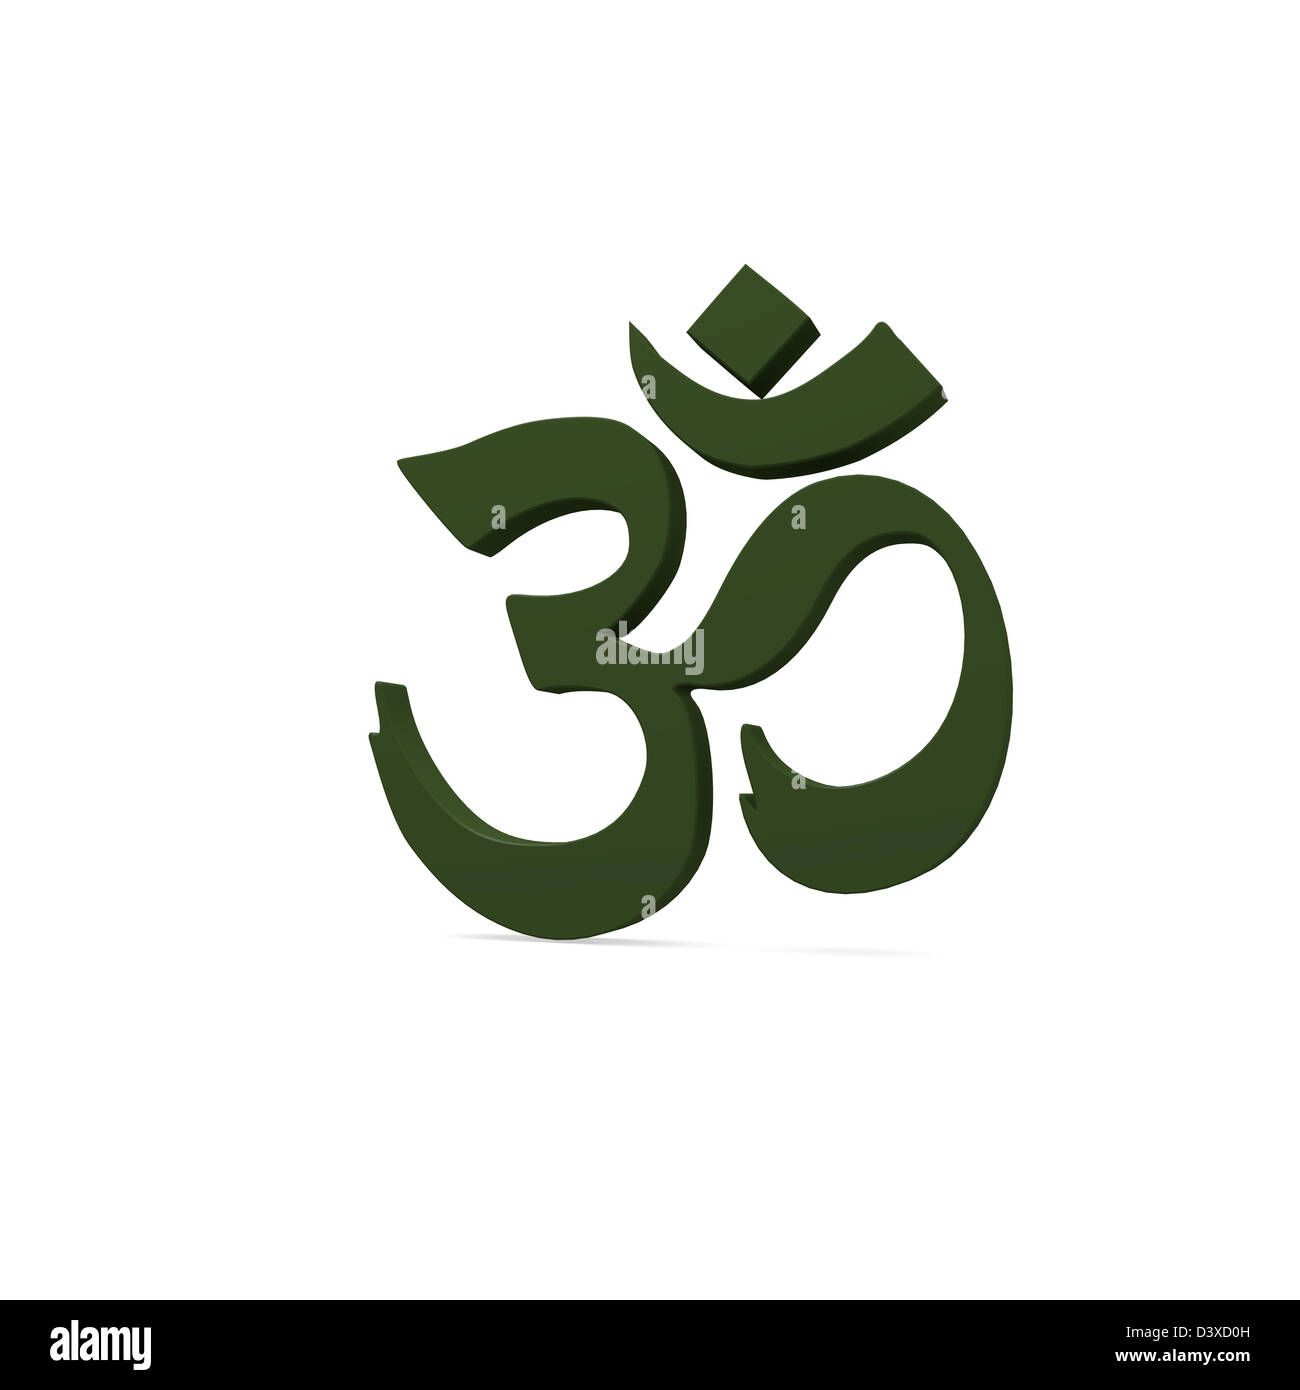 Green Om sign on a white background - Stock Image